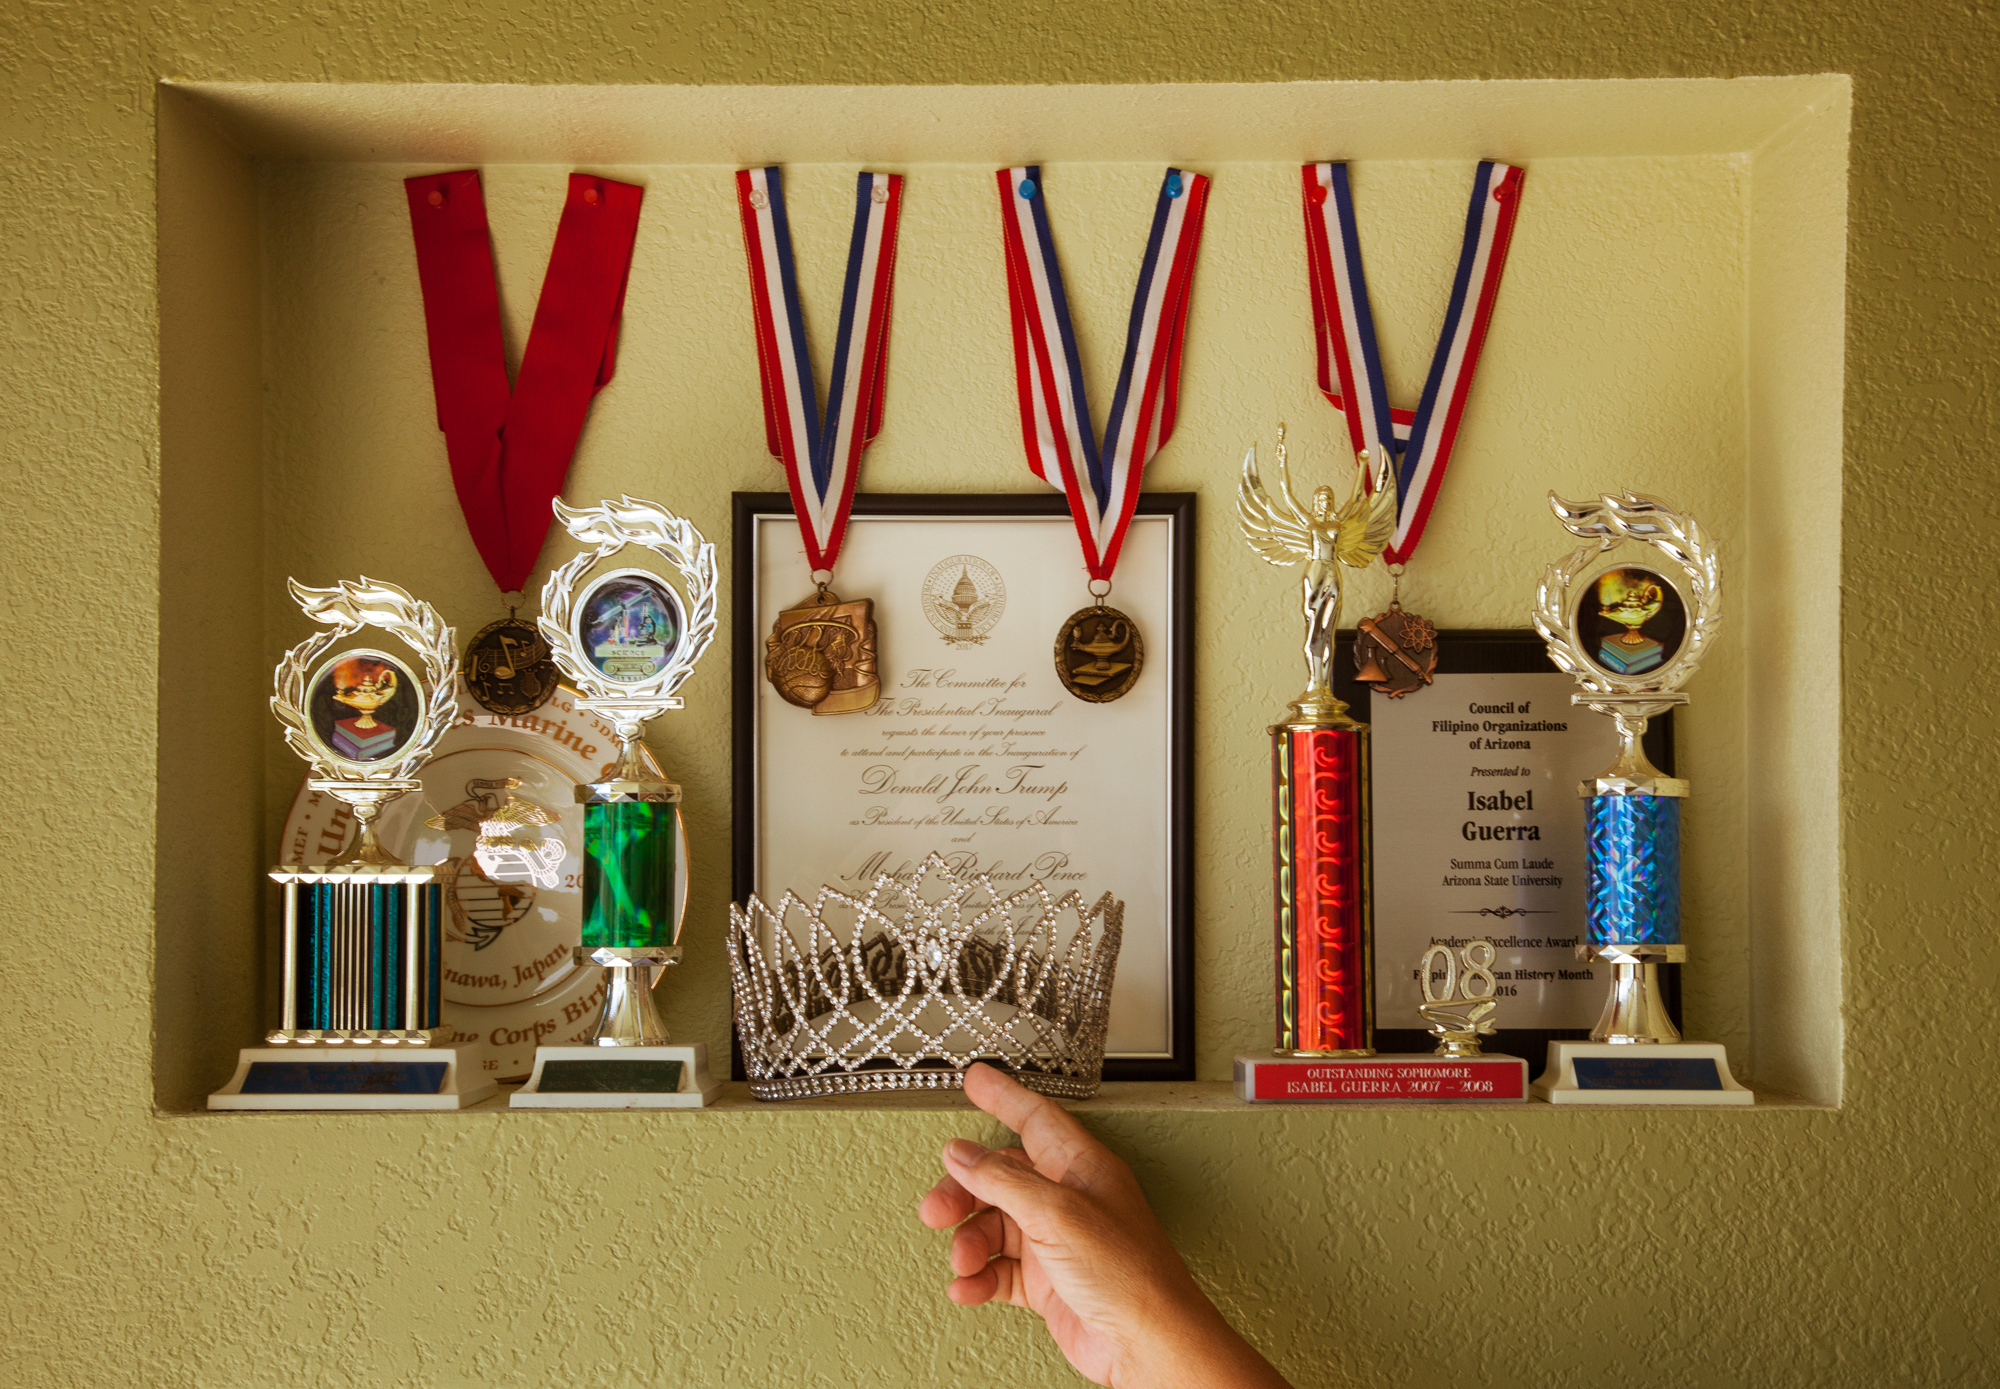 Trophies and ribbons won by the Guerra sisters in the garage of Manolo Guerra in Moreno Valley, California, Wednesday, Aug. 7, 2019. (Photo/ Kat Kaye)